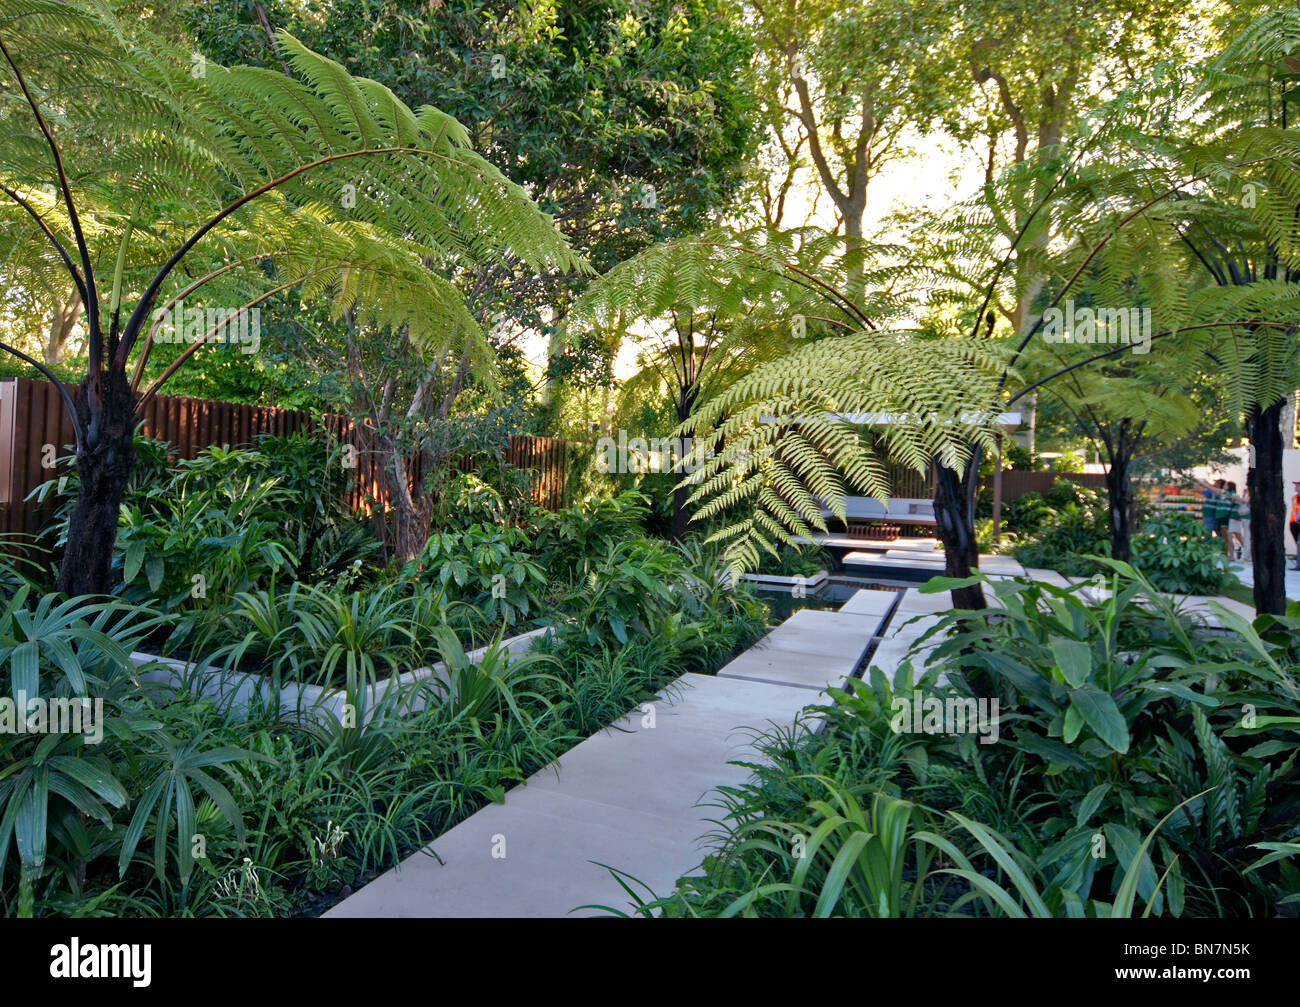 A Creation Of A Tropical Exotic Rainforest Garden With Water